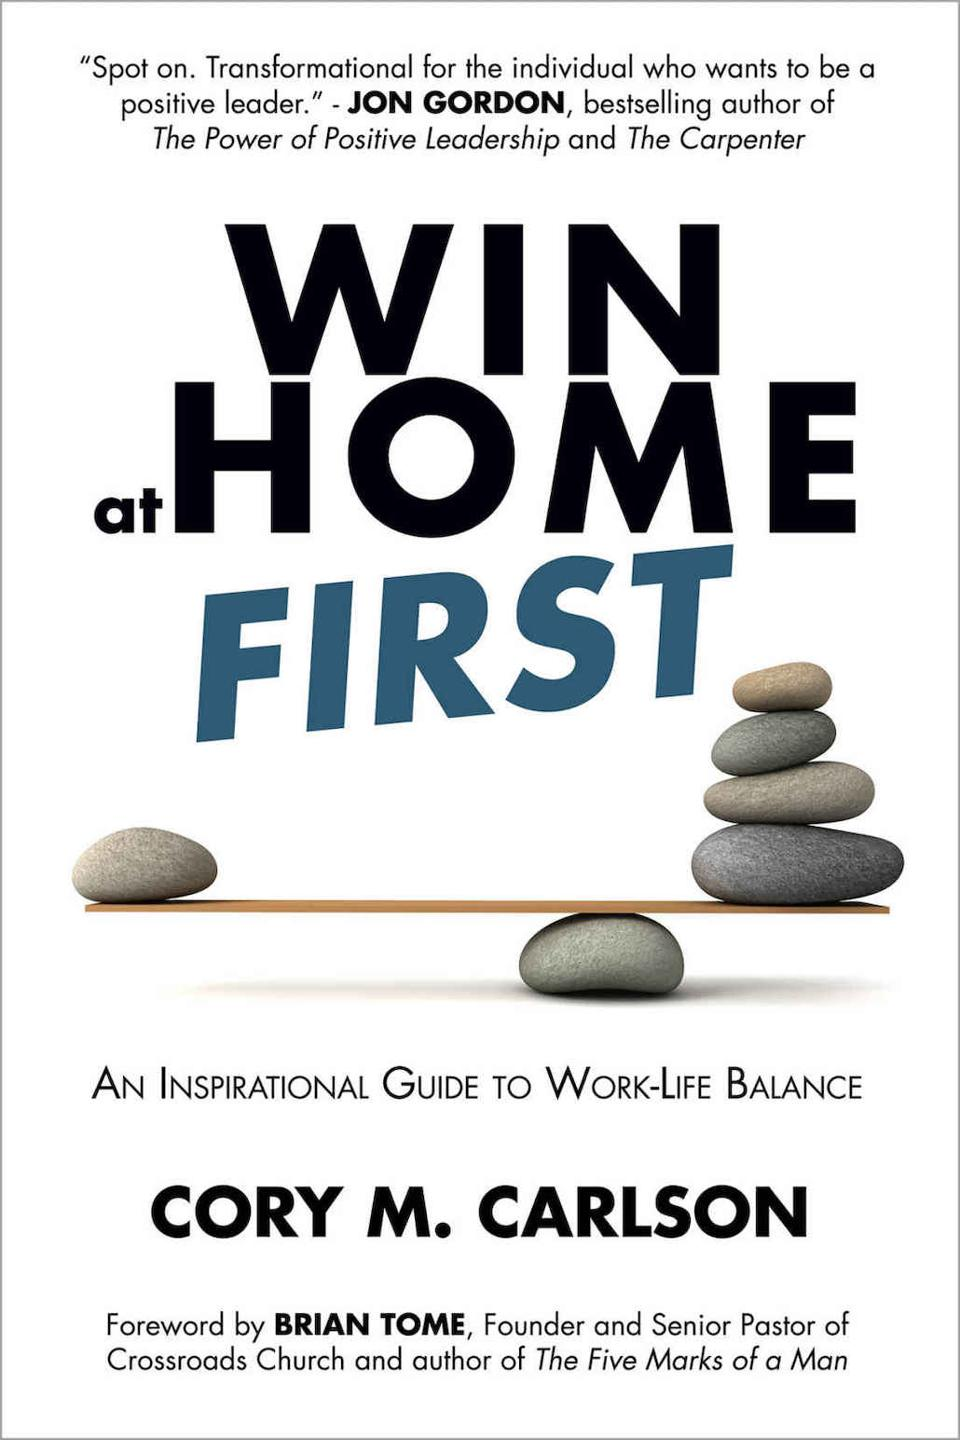 Win at Home First: An Inspirational Guide to Work-Life Balance by Cory M. Carlson